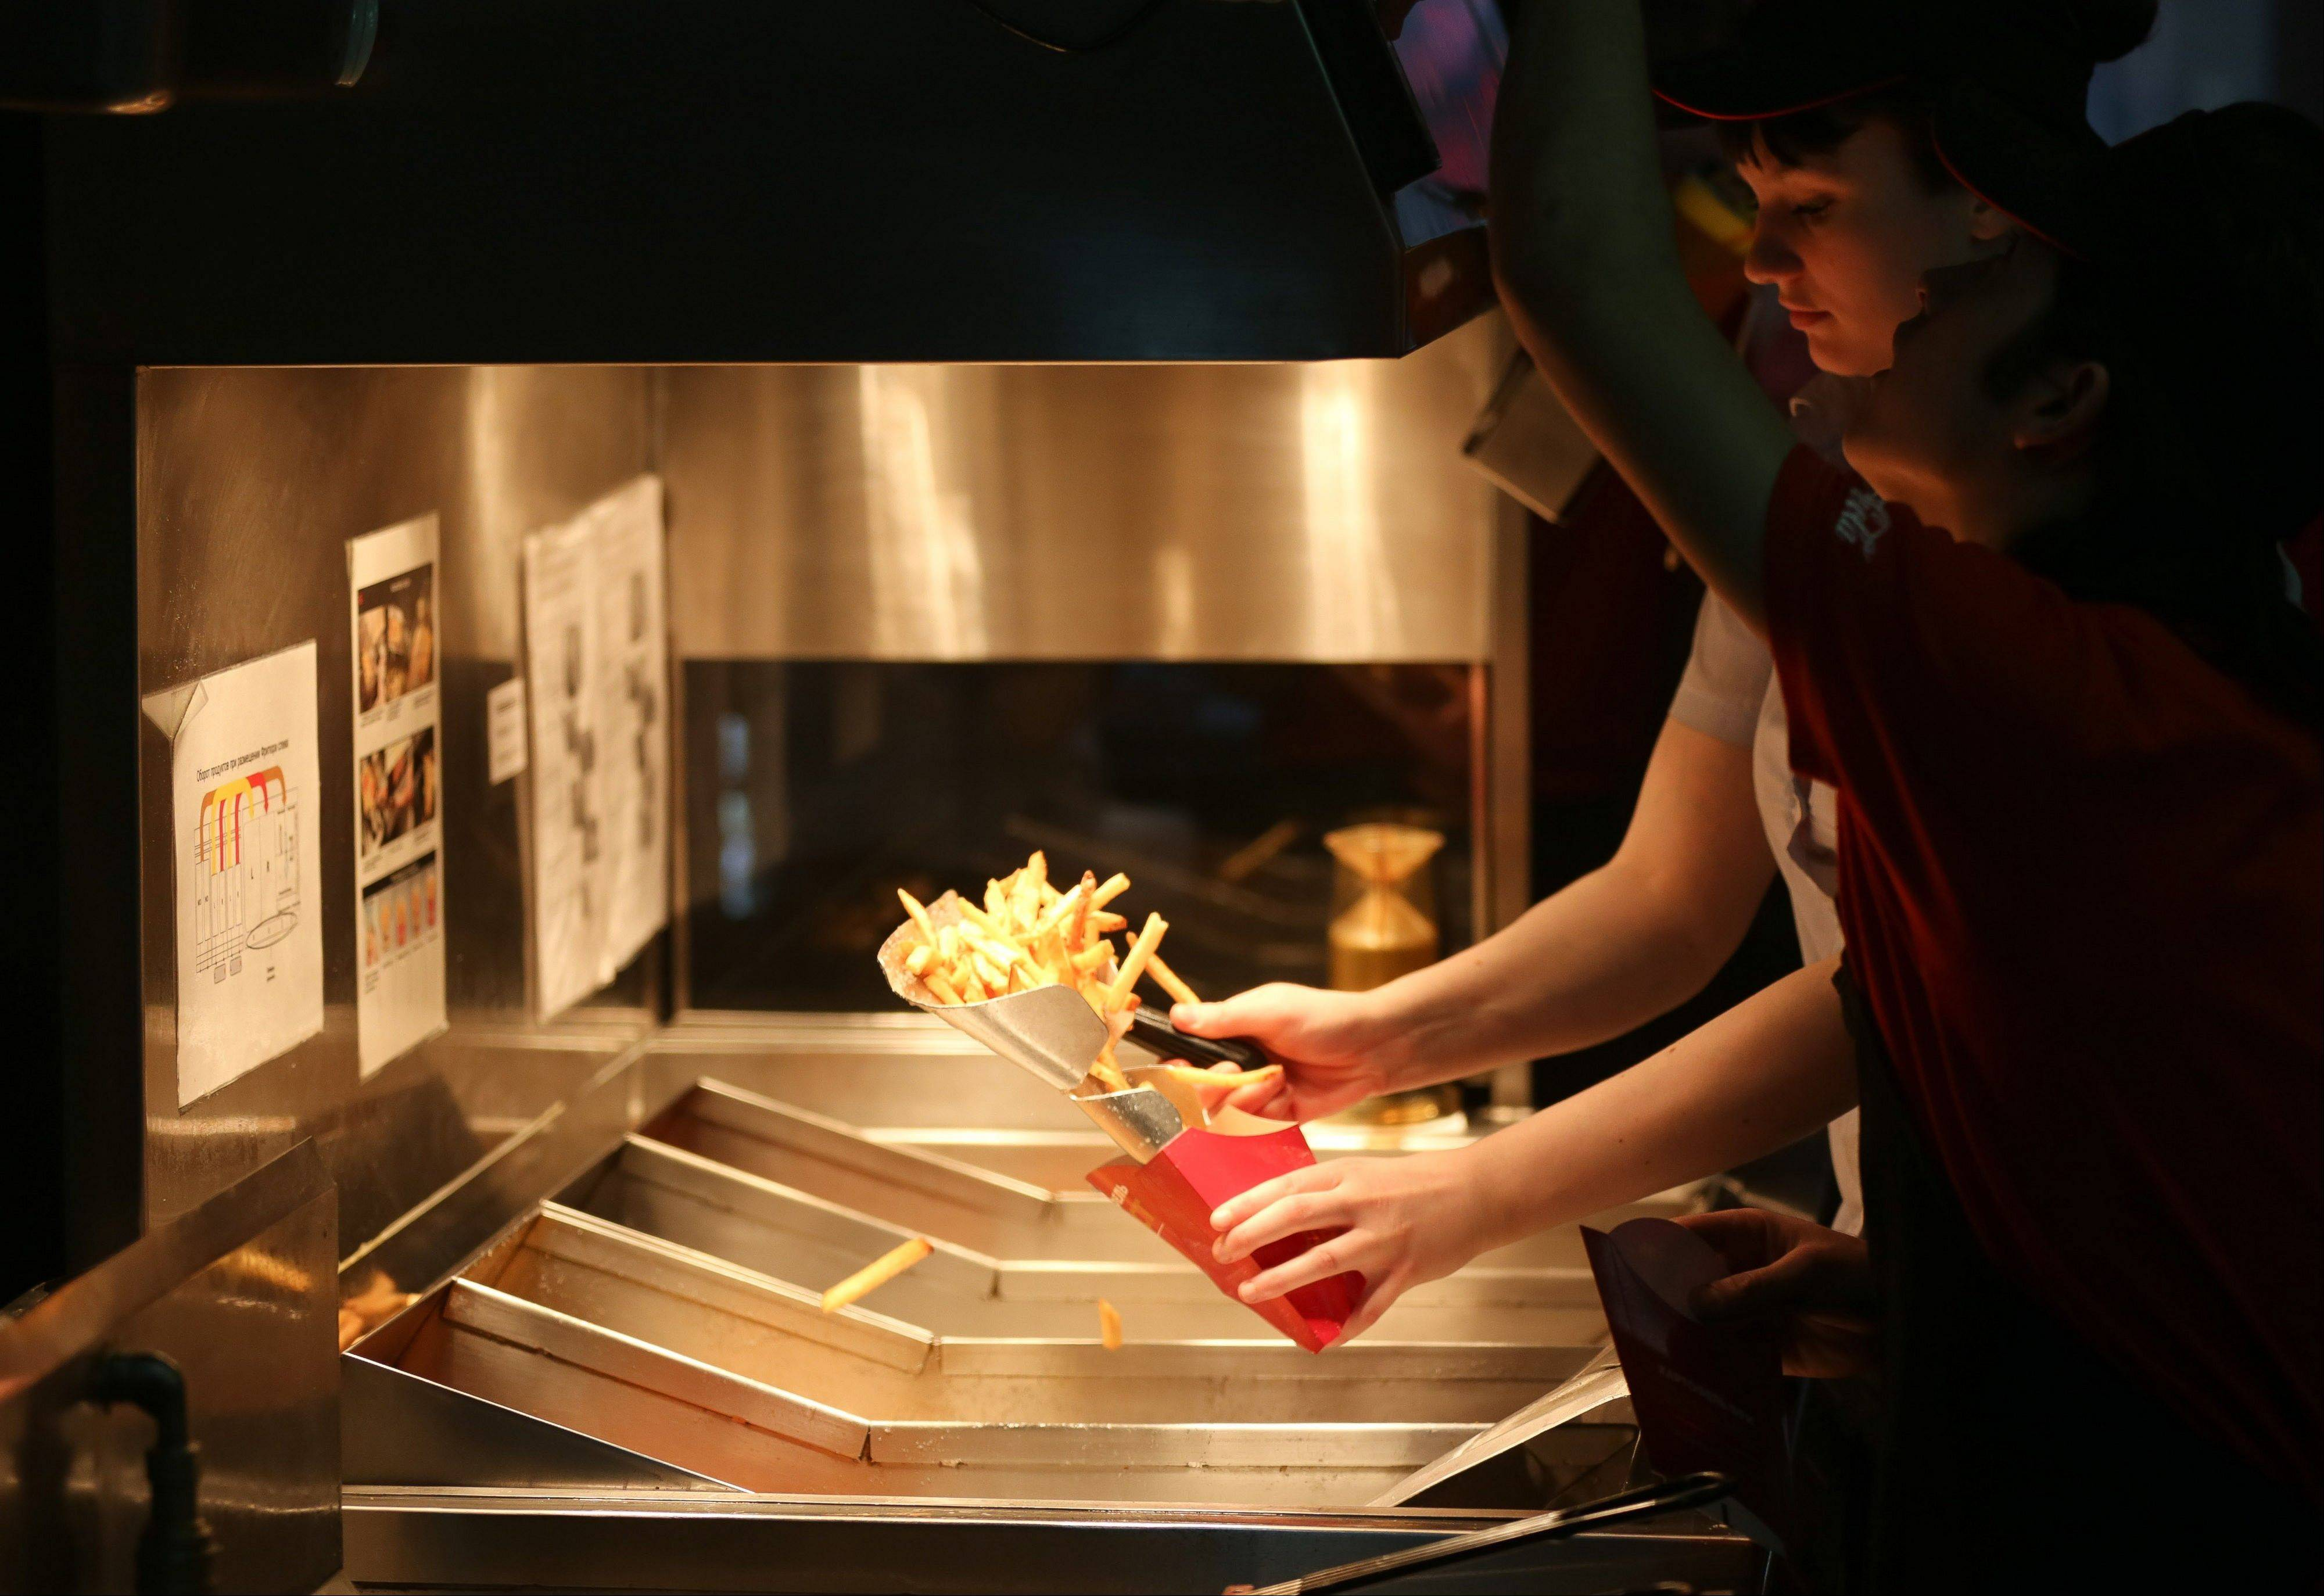 An employee prepares a portion of french fries for a customer in the kitchen area of a Wendy's fast food restaurant in Moscow, Russia.